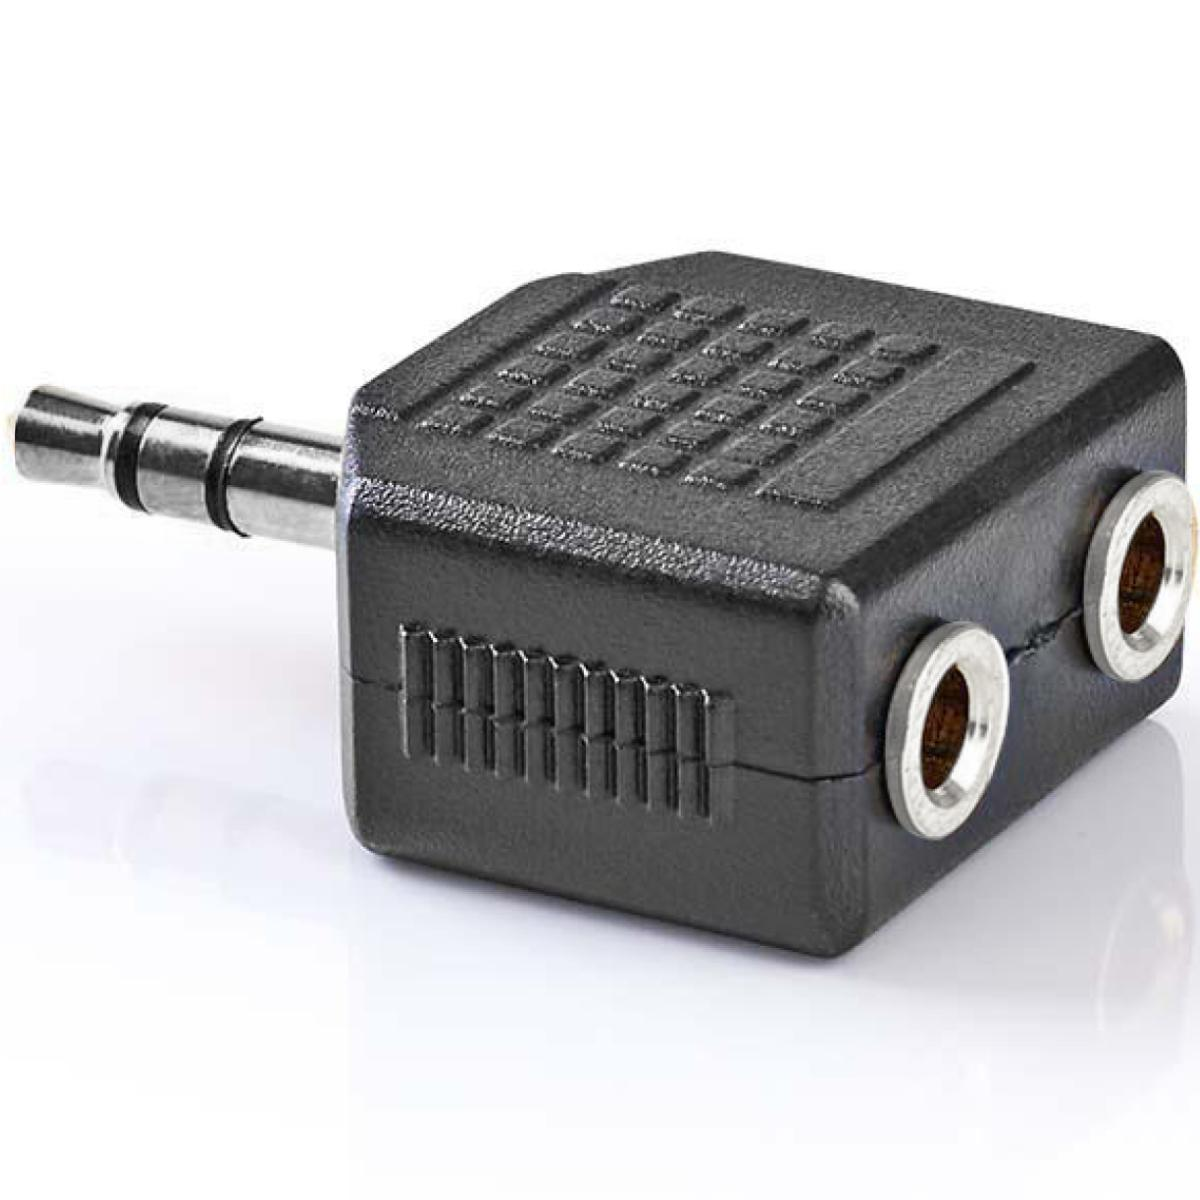 Jack Splitter 2x Jack 3.5mm Stereo Female